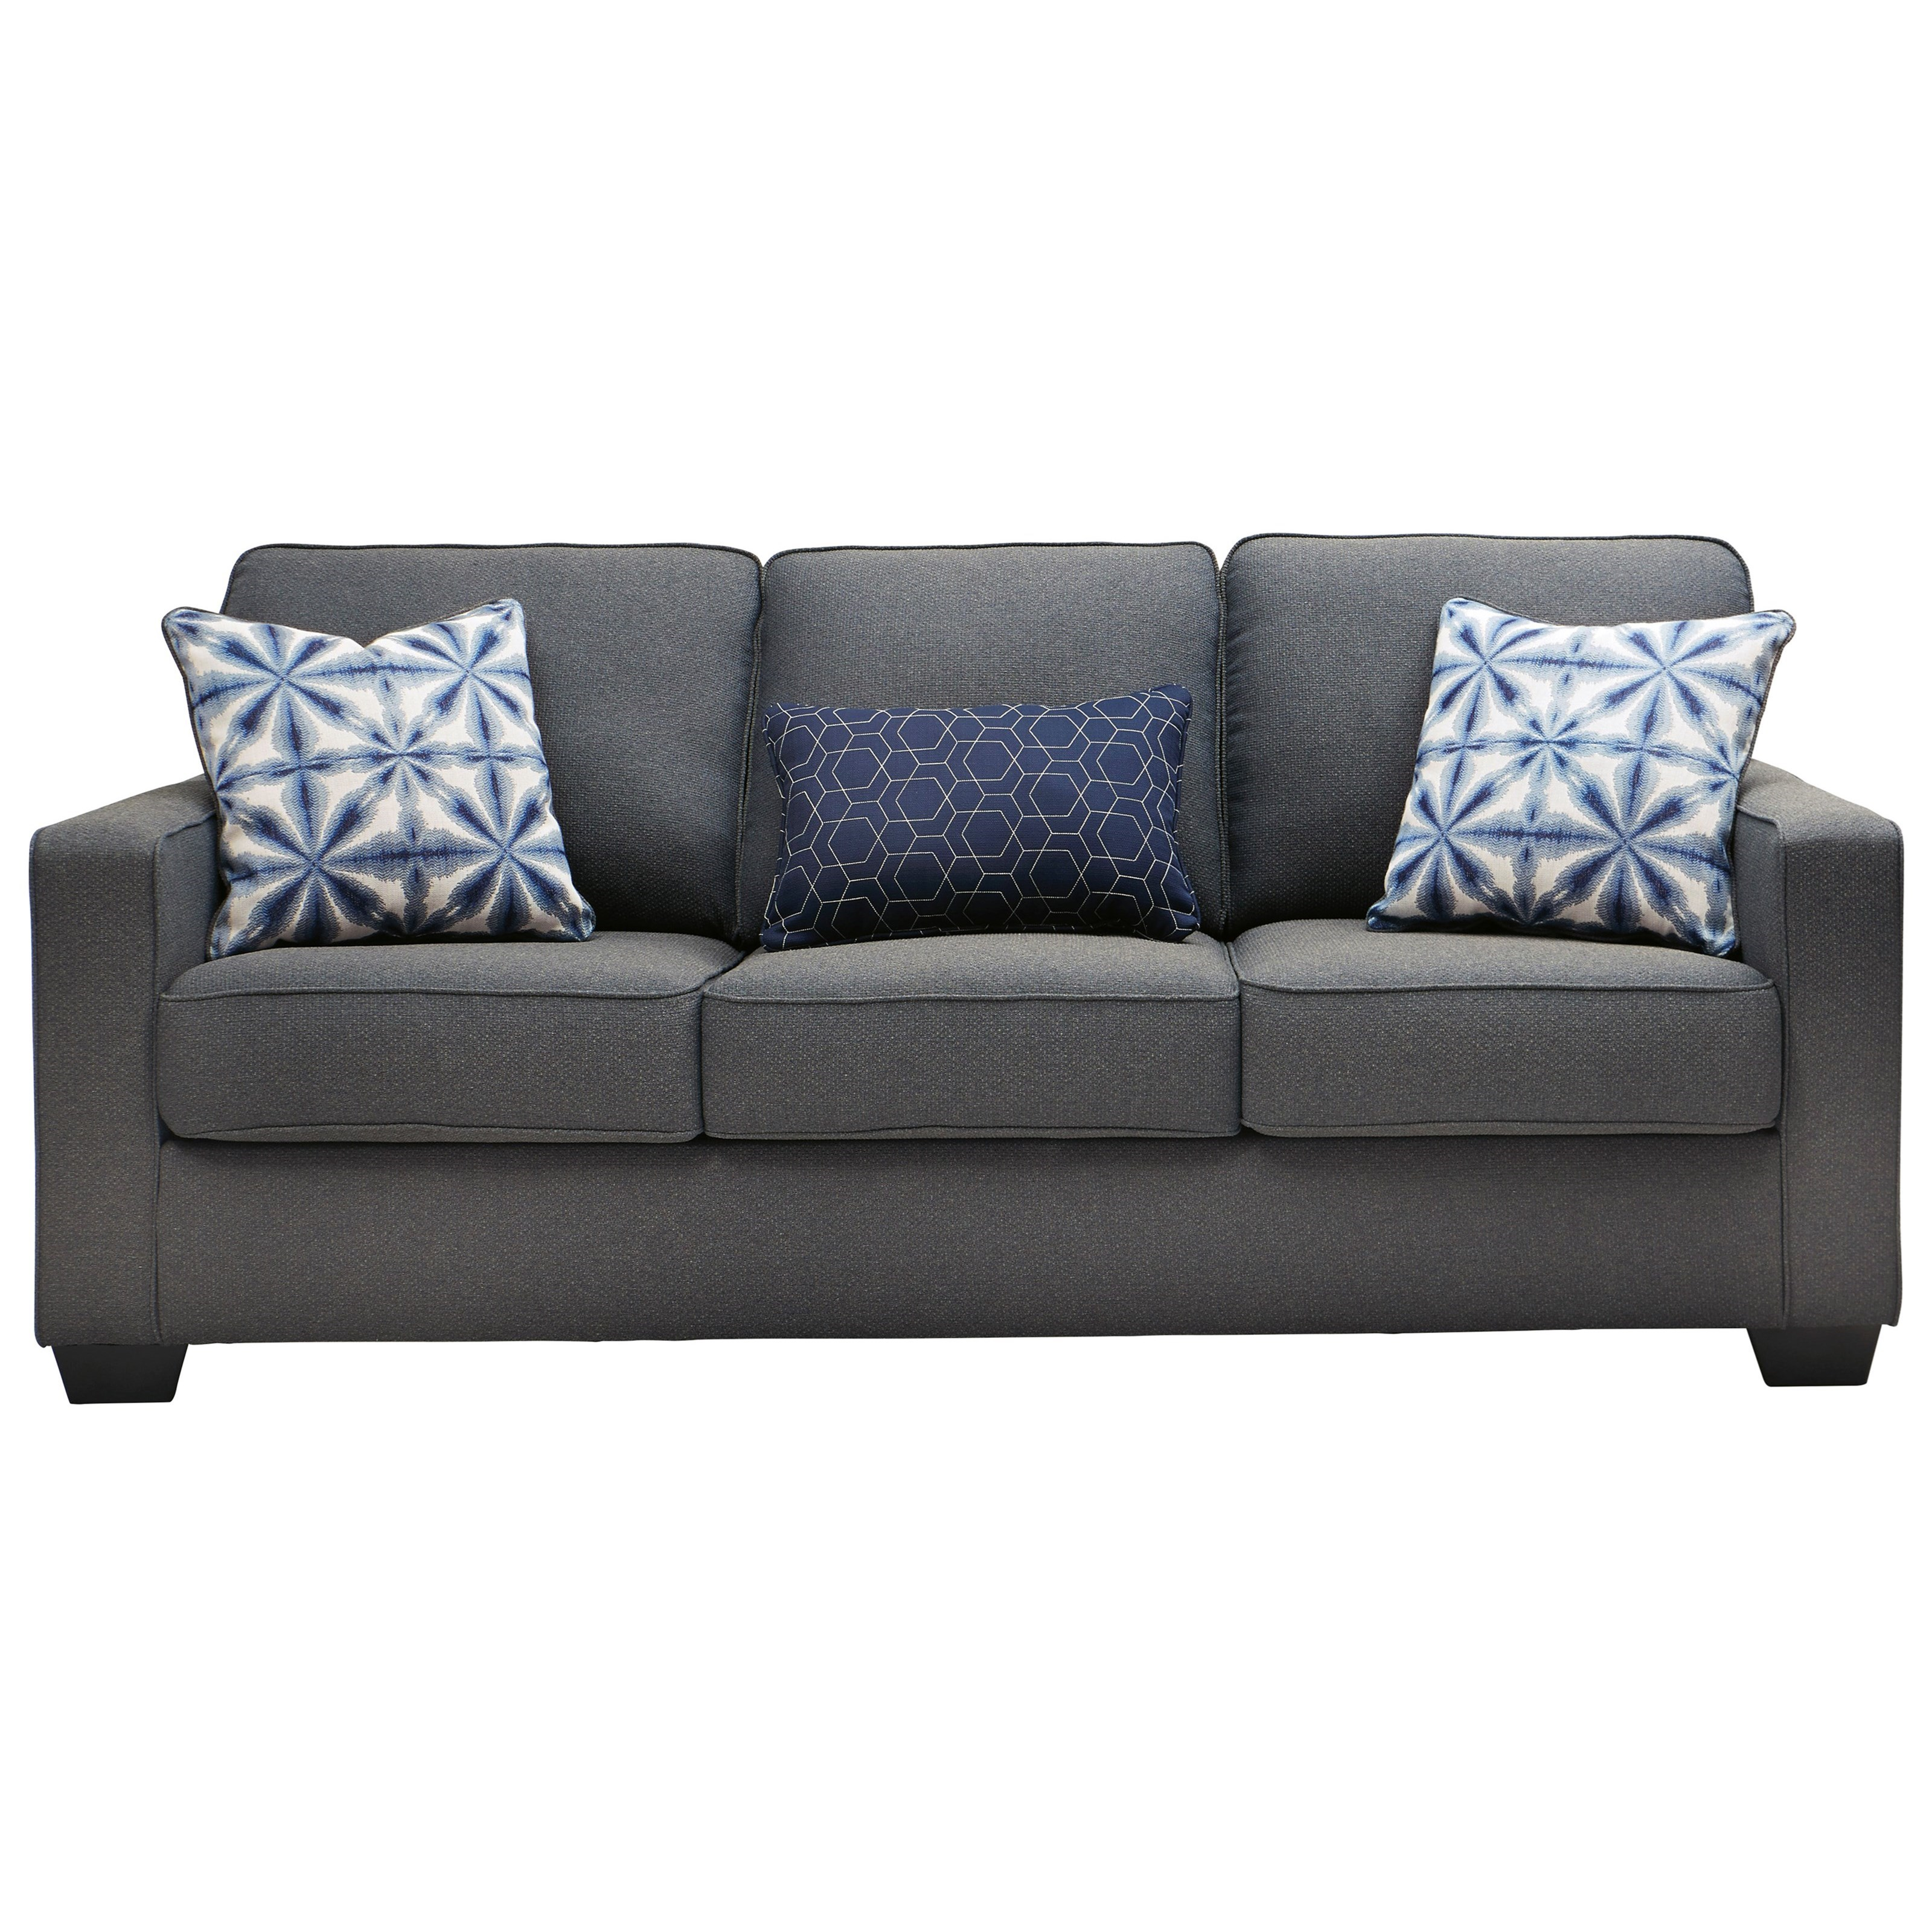 Kiessel Nuvella Sofa by Benchcraft at Catalog Outlet